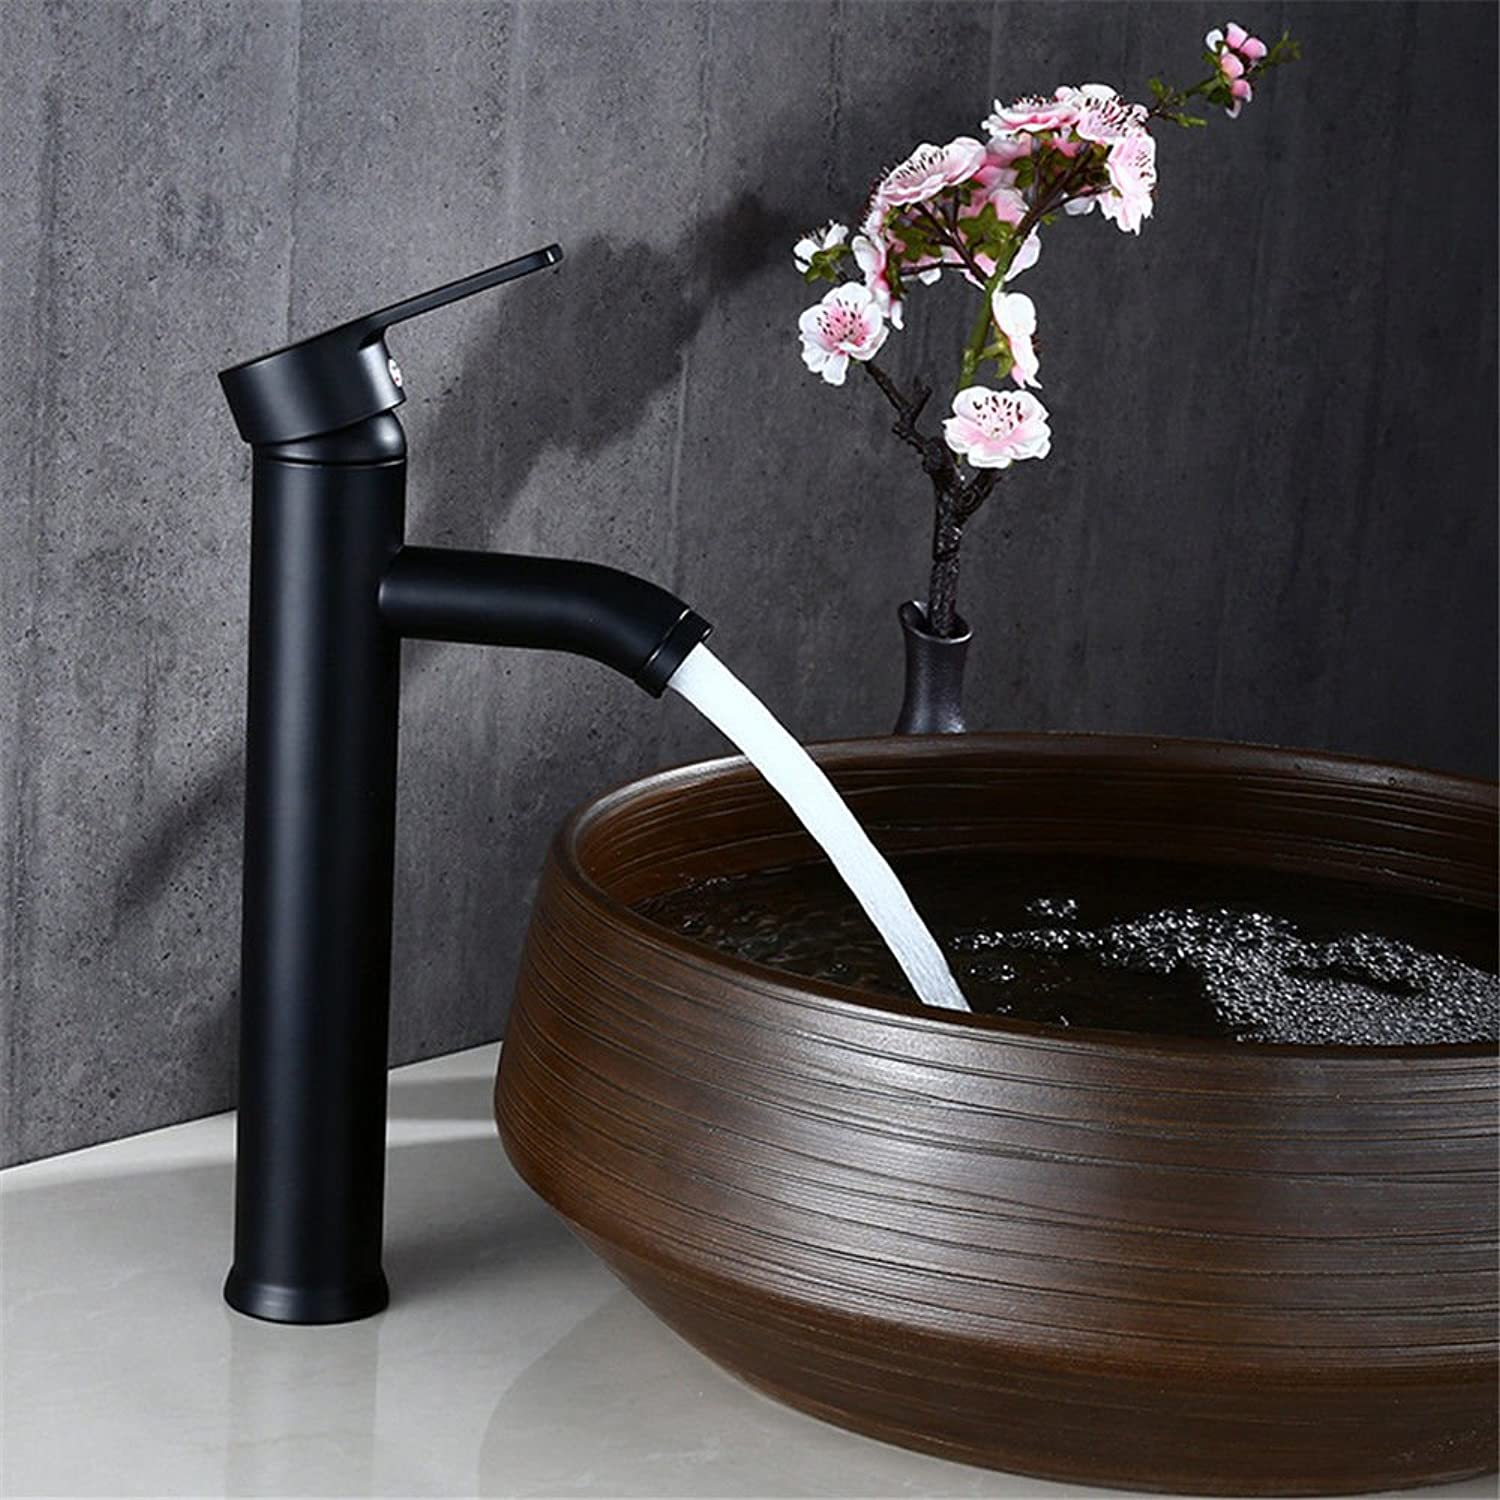 SADASD Contemporary Bathroom Full Copper Basin Faucet Black Paint 304 Stainless Steel Single Basin Sink Mixer Tap Ceramic Spool Single Hole Single Handle Cold Water With G1 2 Hose